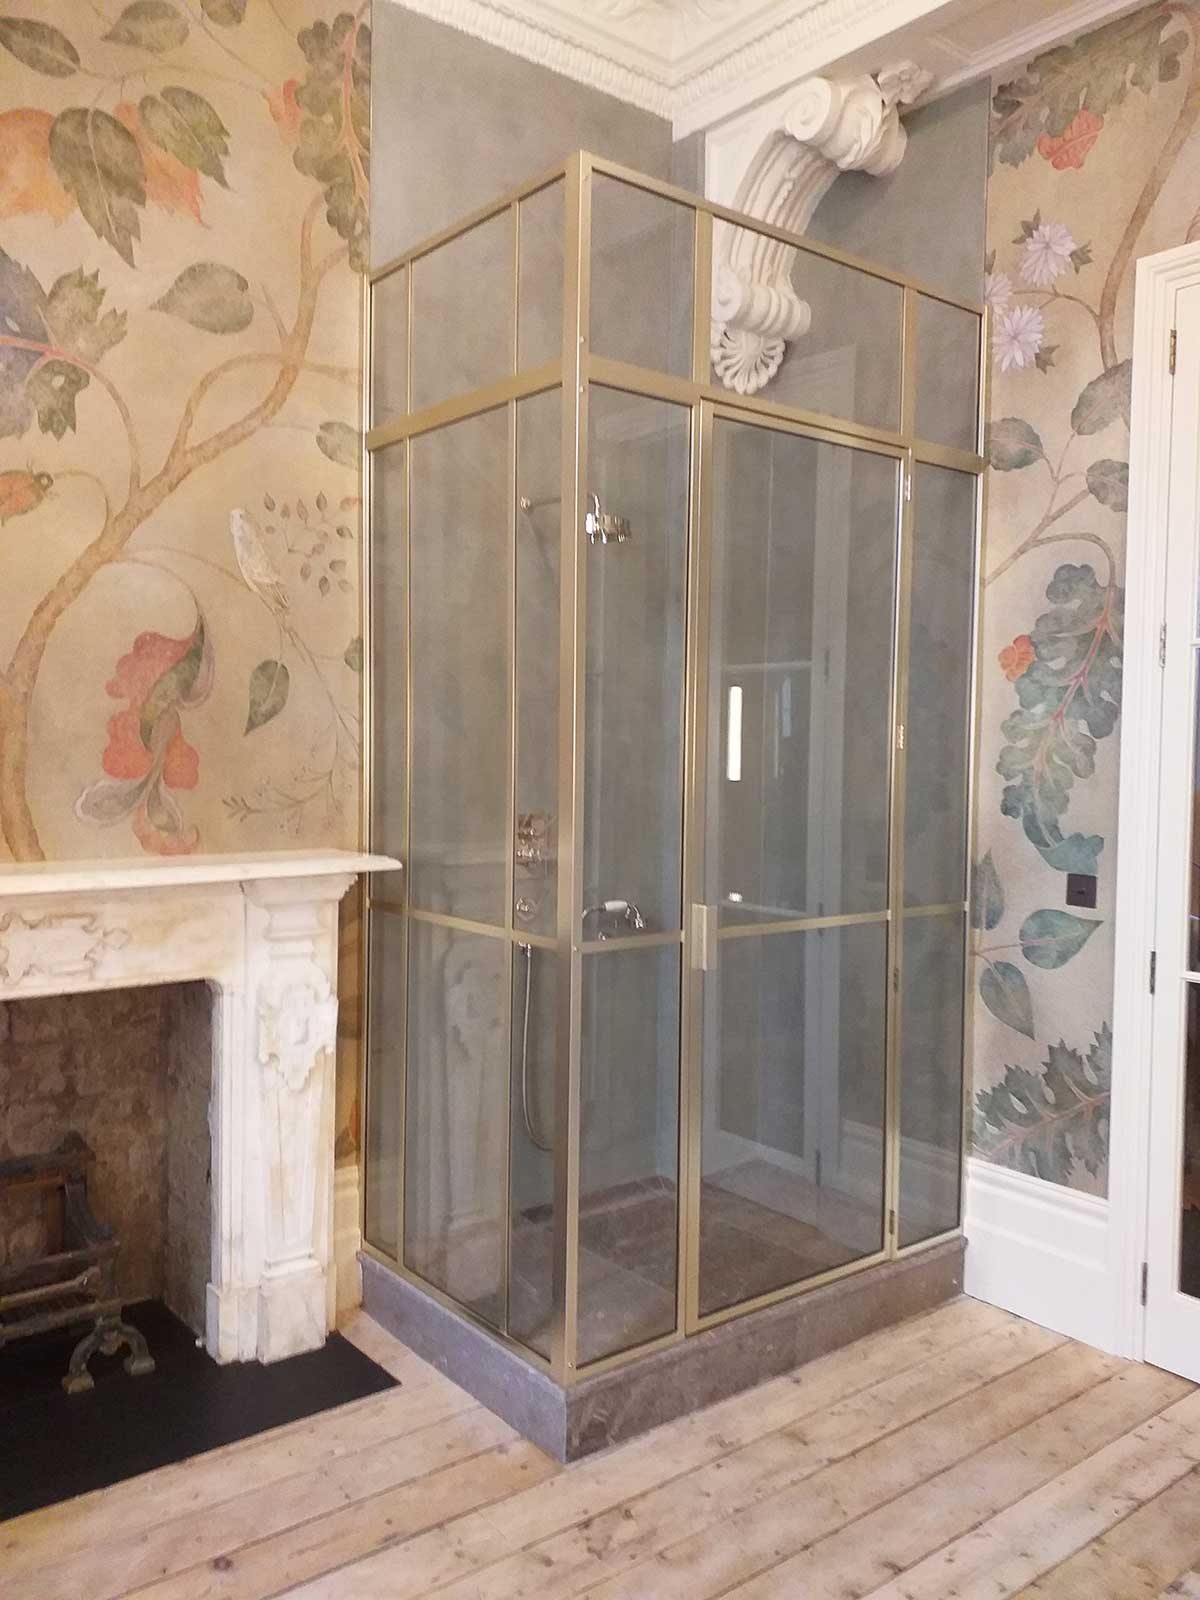 Bespoke brushed nickel shower cubical with transom from our precious metal range